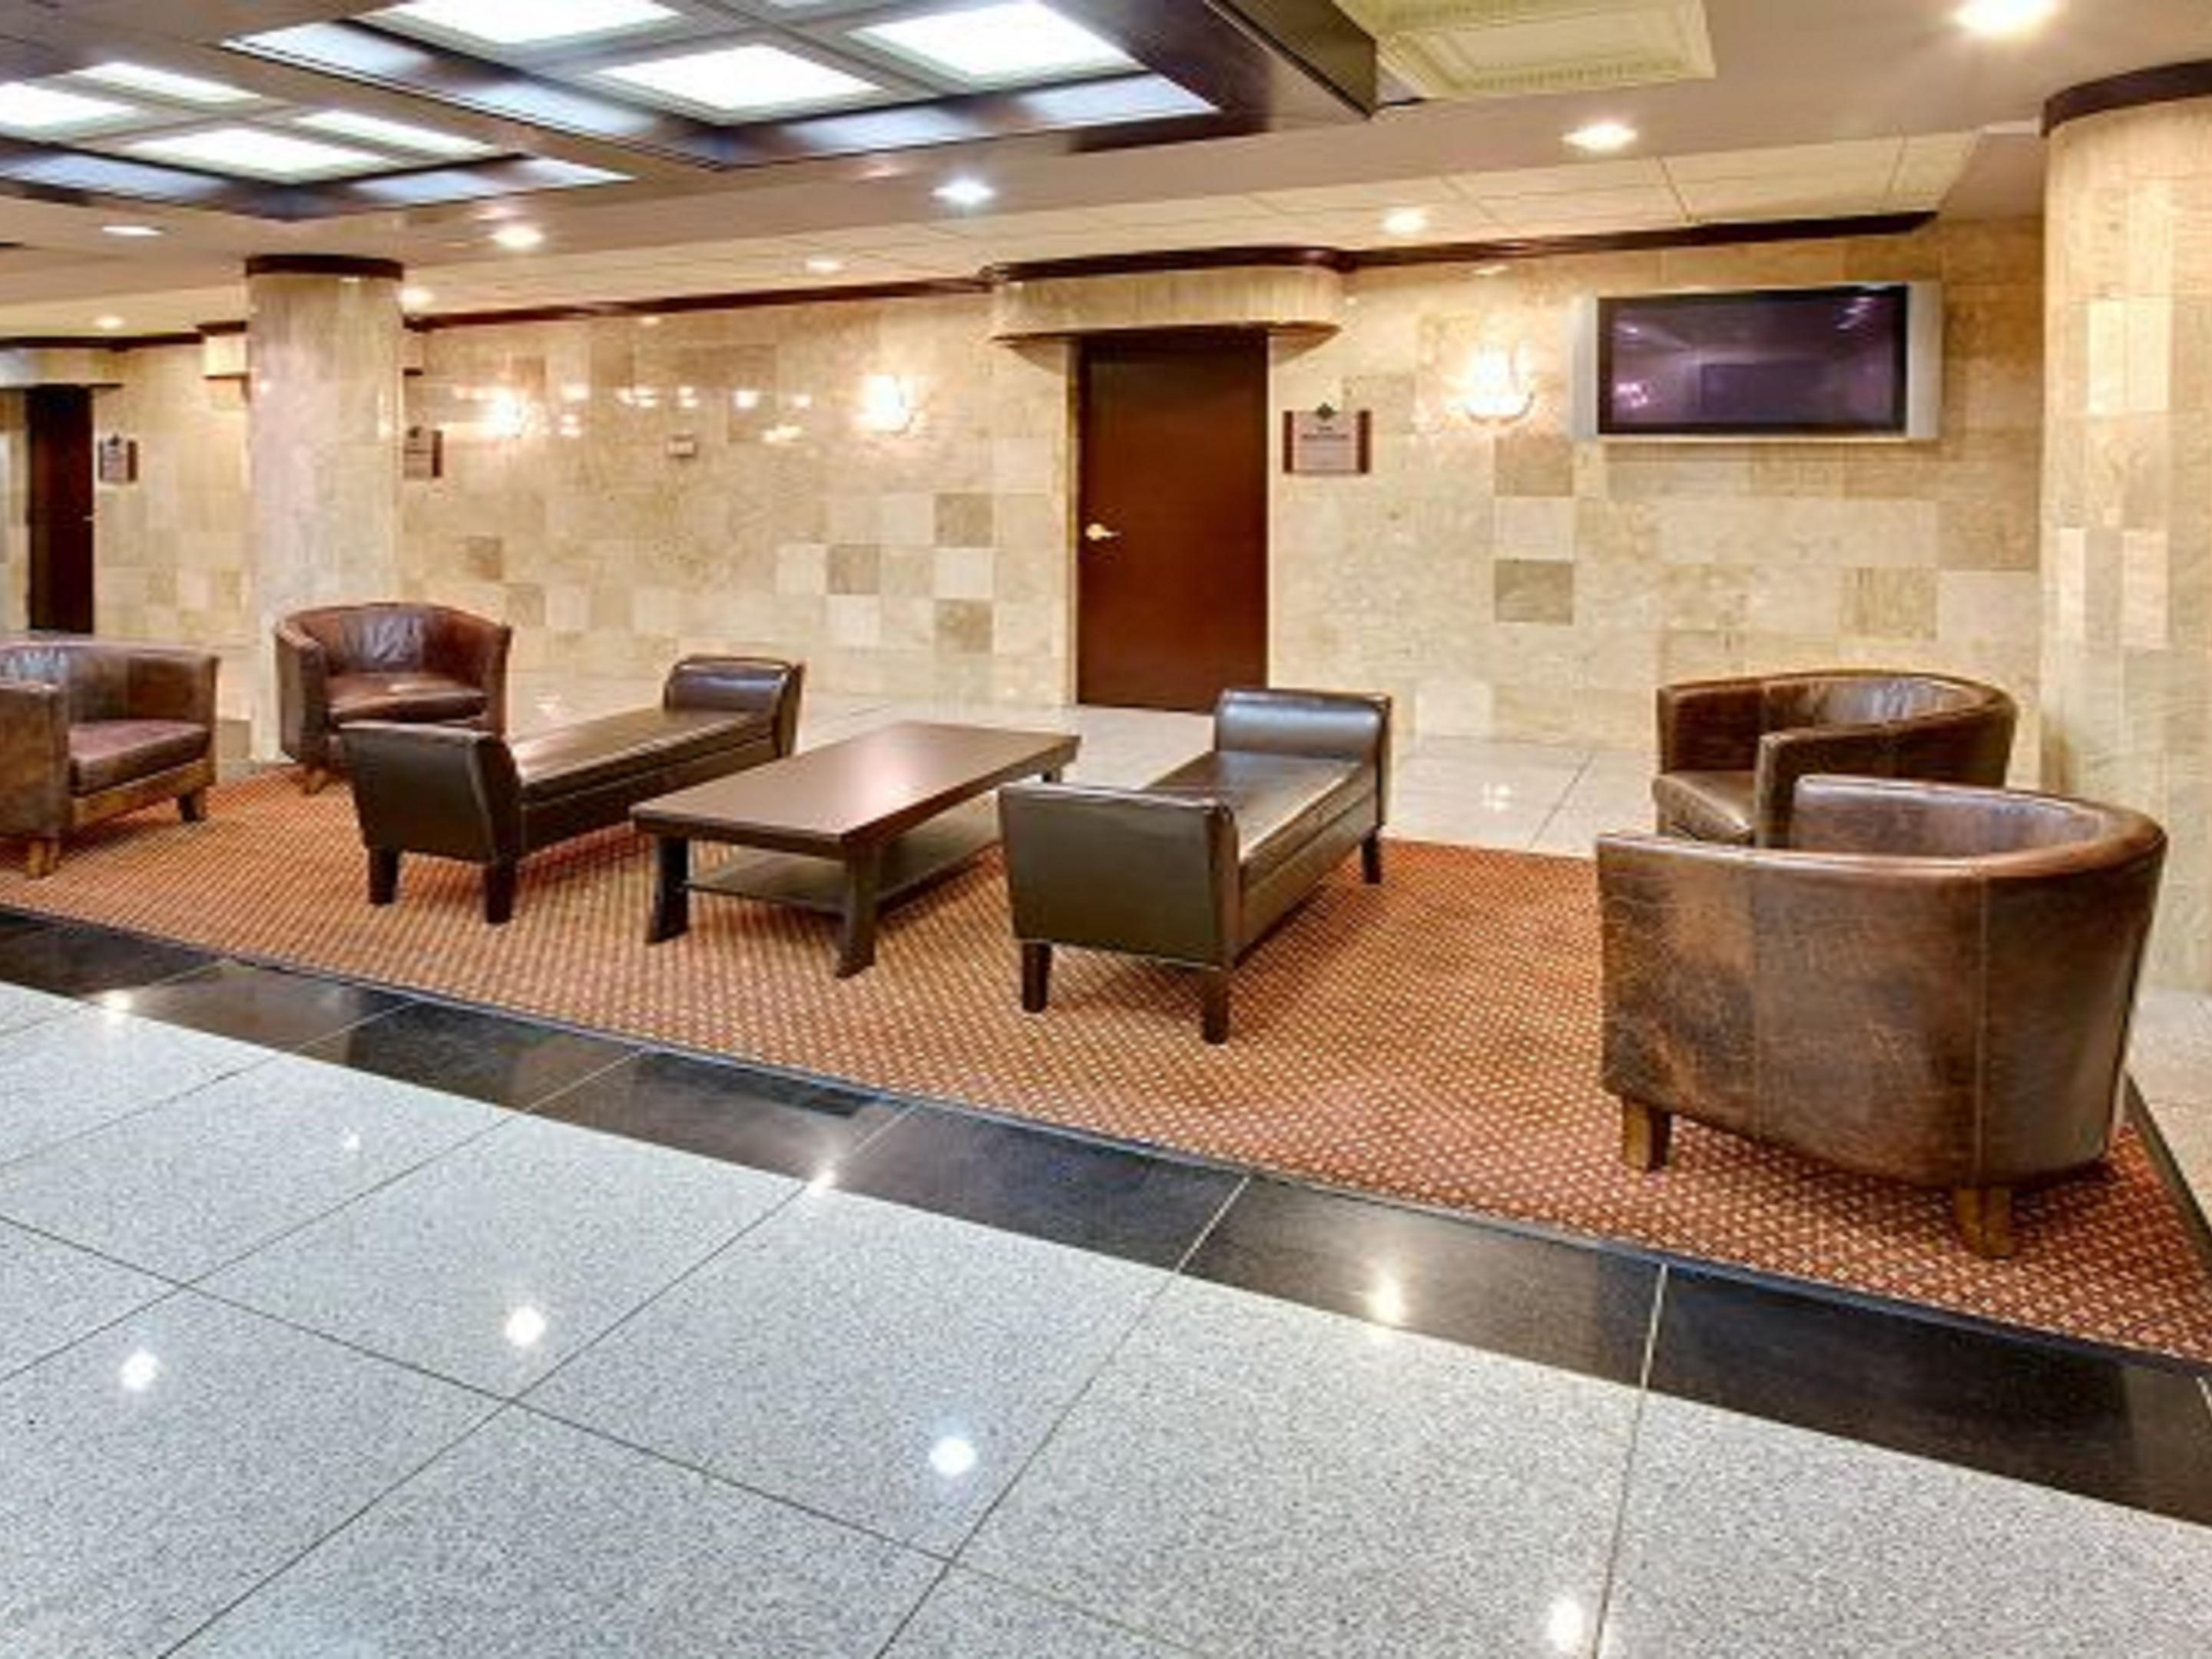 Lobby of Holiday Inn North Shore